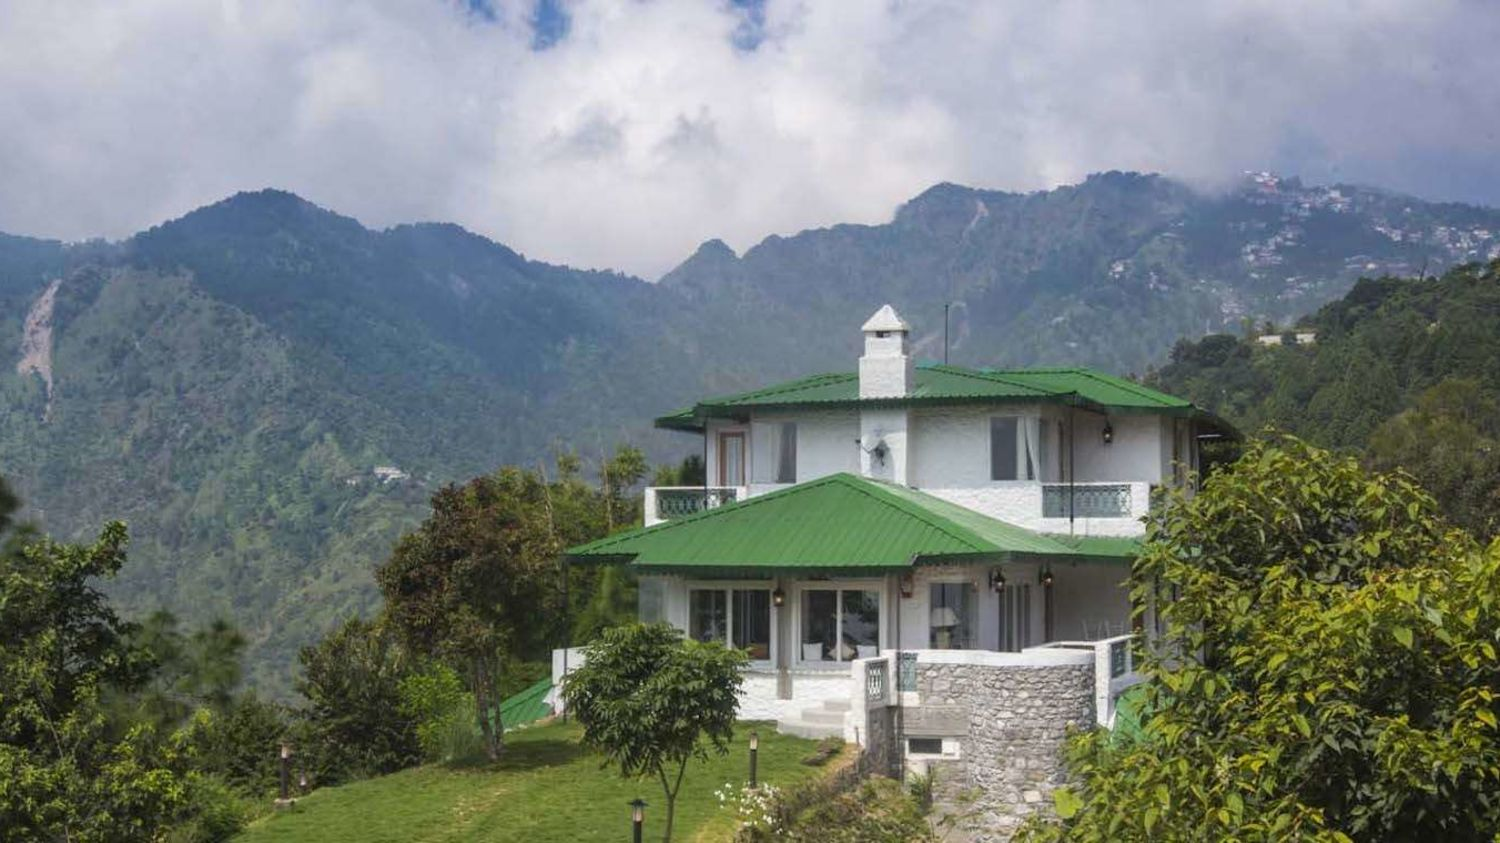 Holiday Destination in India, Bara Bungalow, Gethia, Nainital, Places To Visit Near Nainital